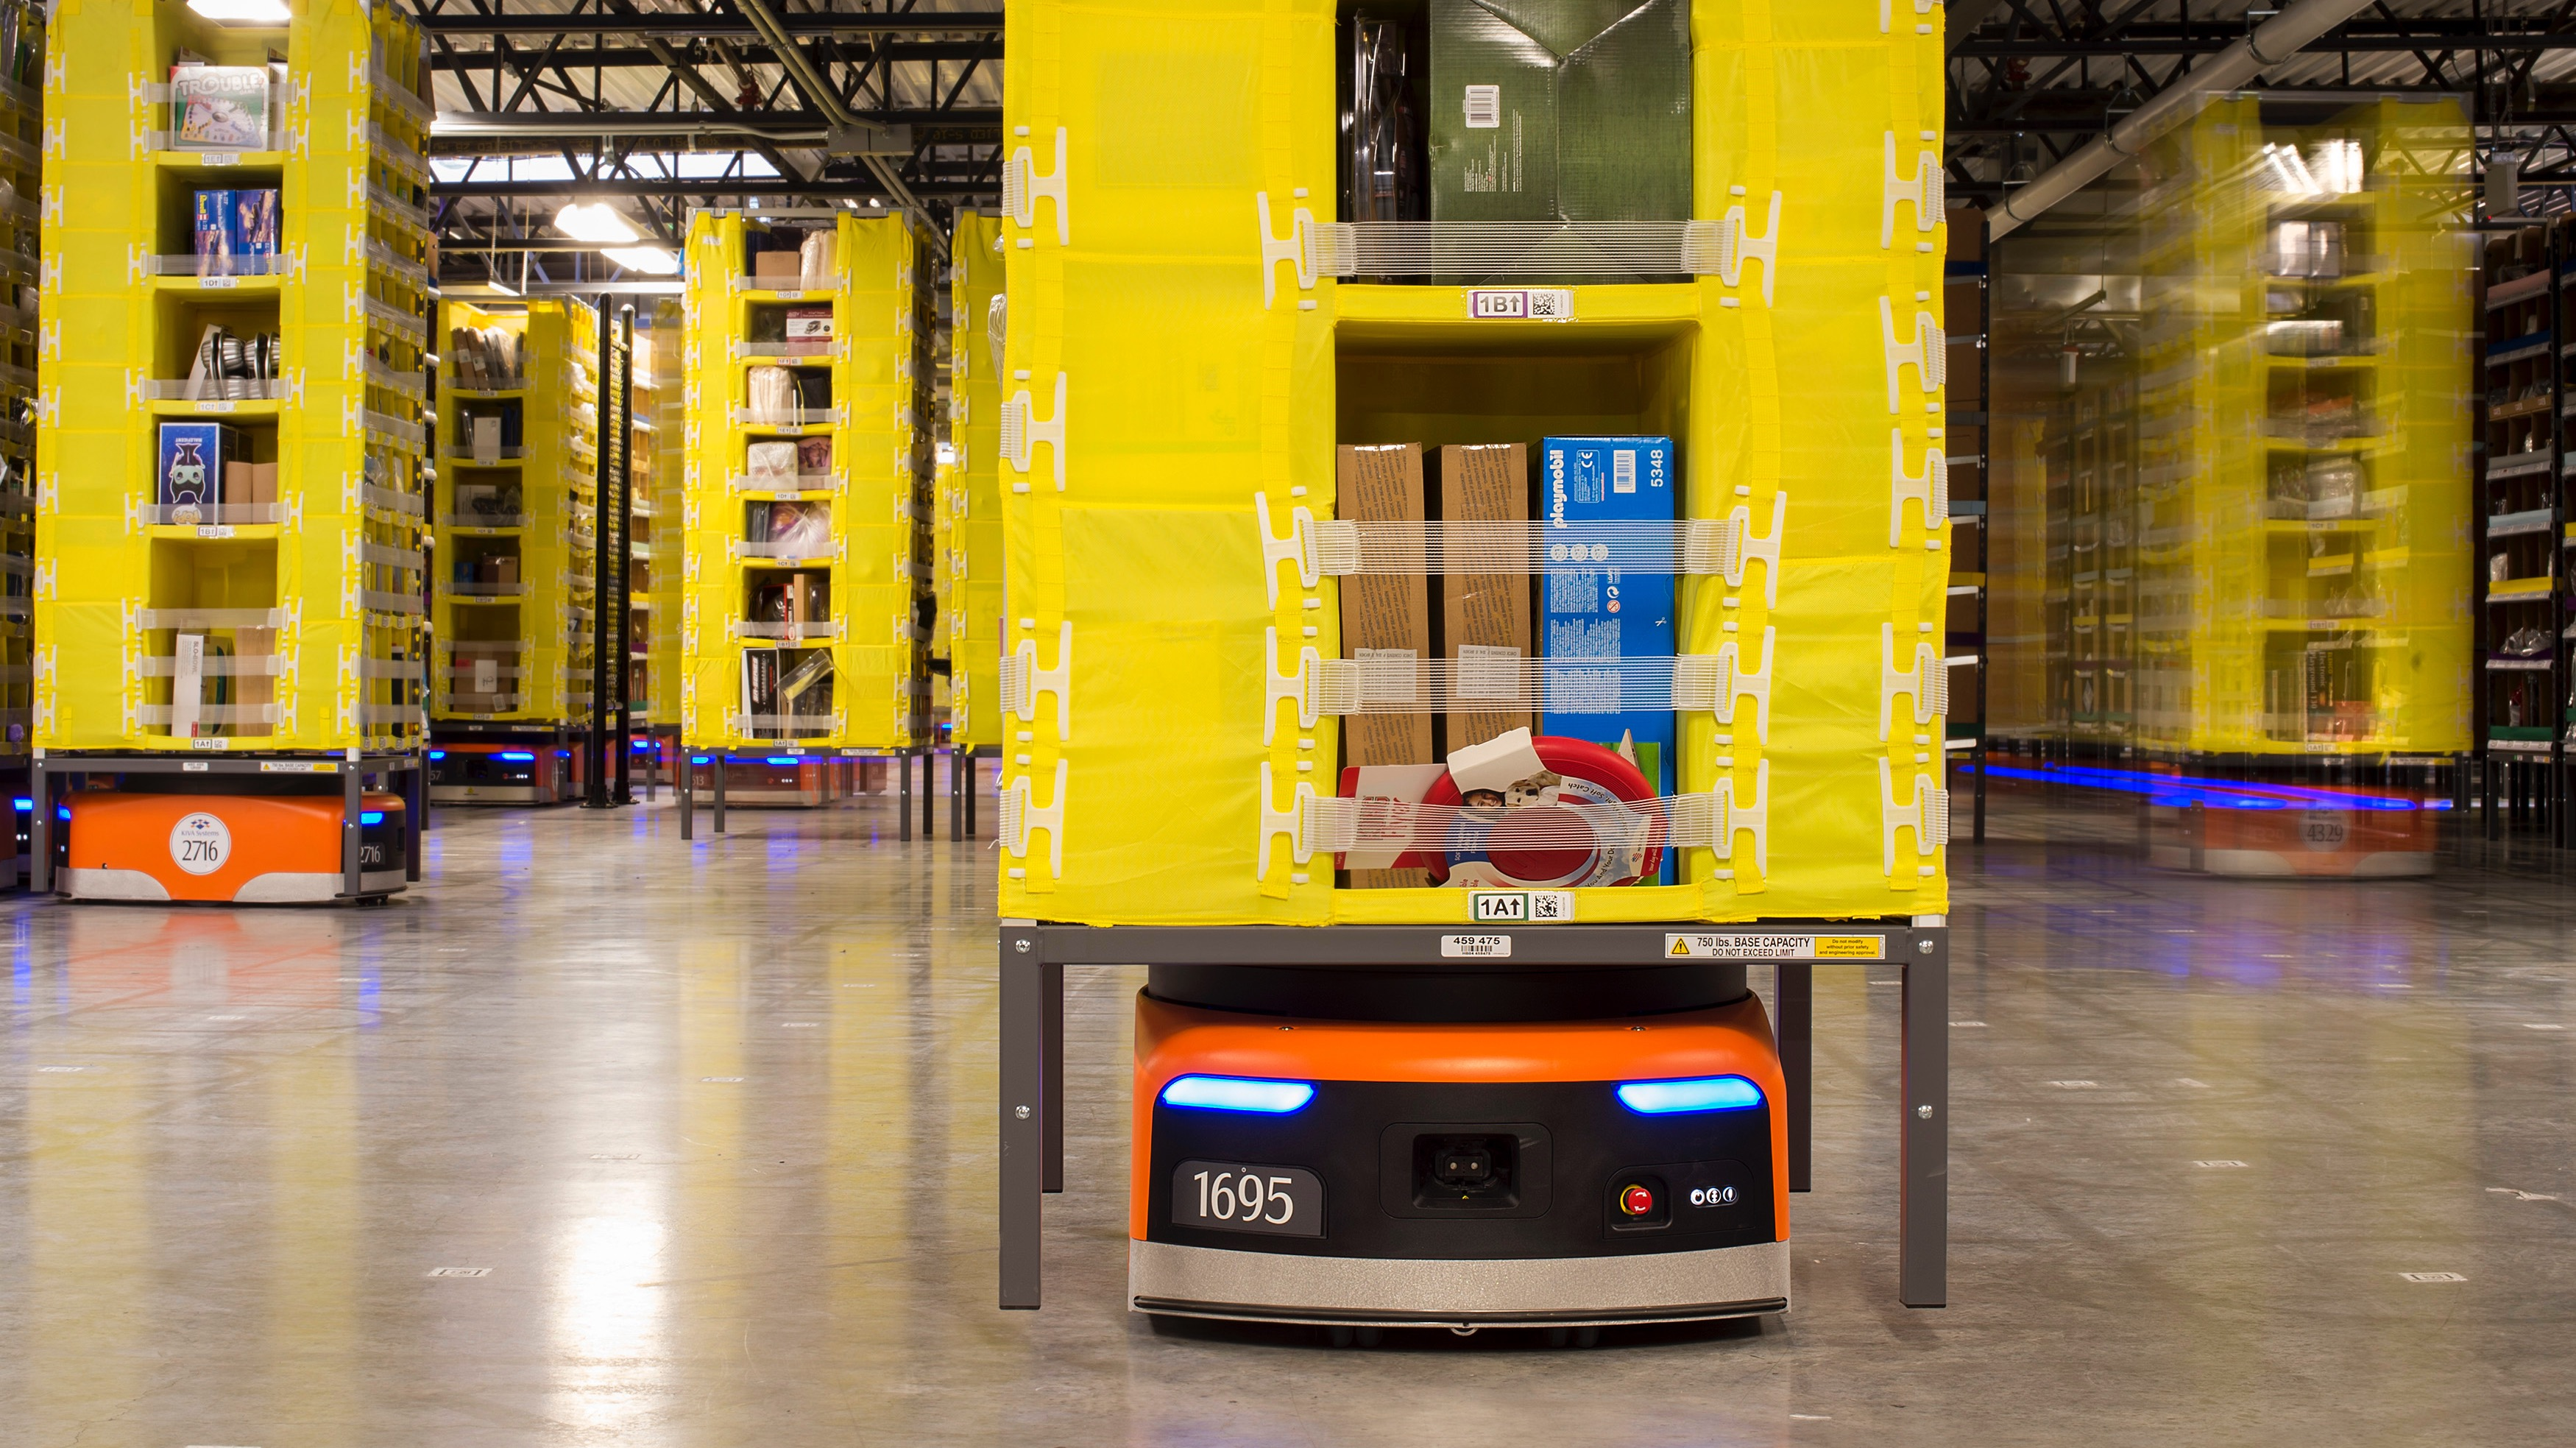 Kiva robots move inventory at an Amazon fulfilment center in Tracy, California December 1, 2014. Amazon.com Inc has installed more than 15,000 robots across 10 U.S. warehouses, a move that promises to cut operating costs by one-fifth and get packages out the door more quickly in the run-up to Christmas.   REUTERS/Noah Berger  (UNITED STATES - Tags: SCIENCE TECHNOLOGY BUSINESS) - RTR4GBF0